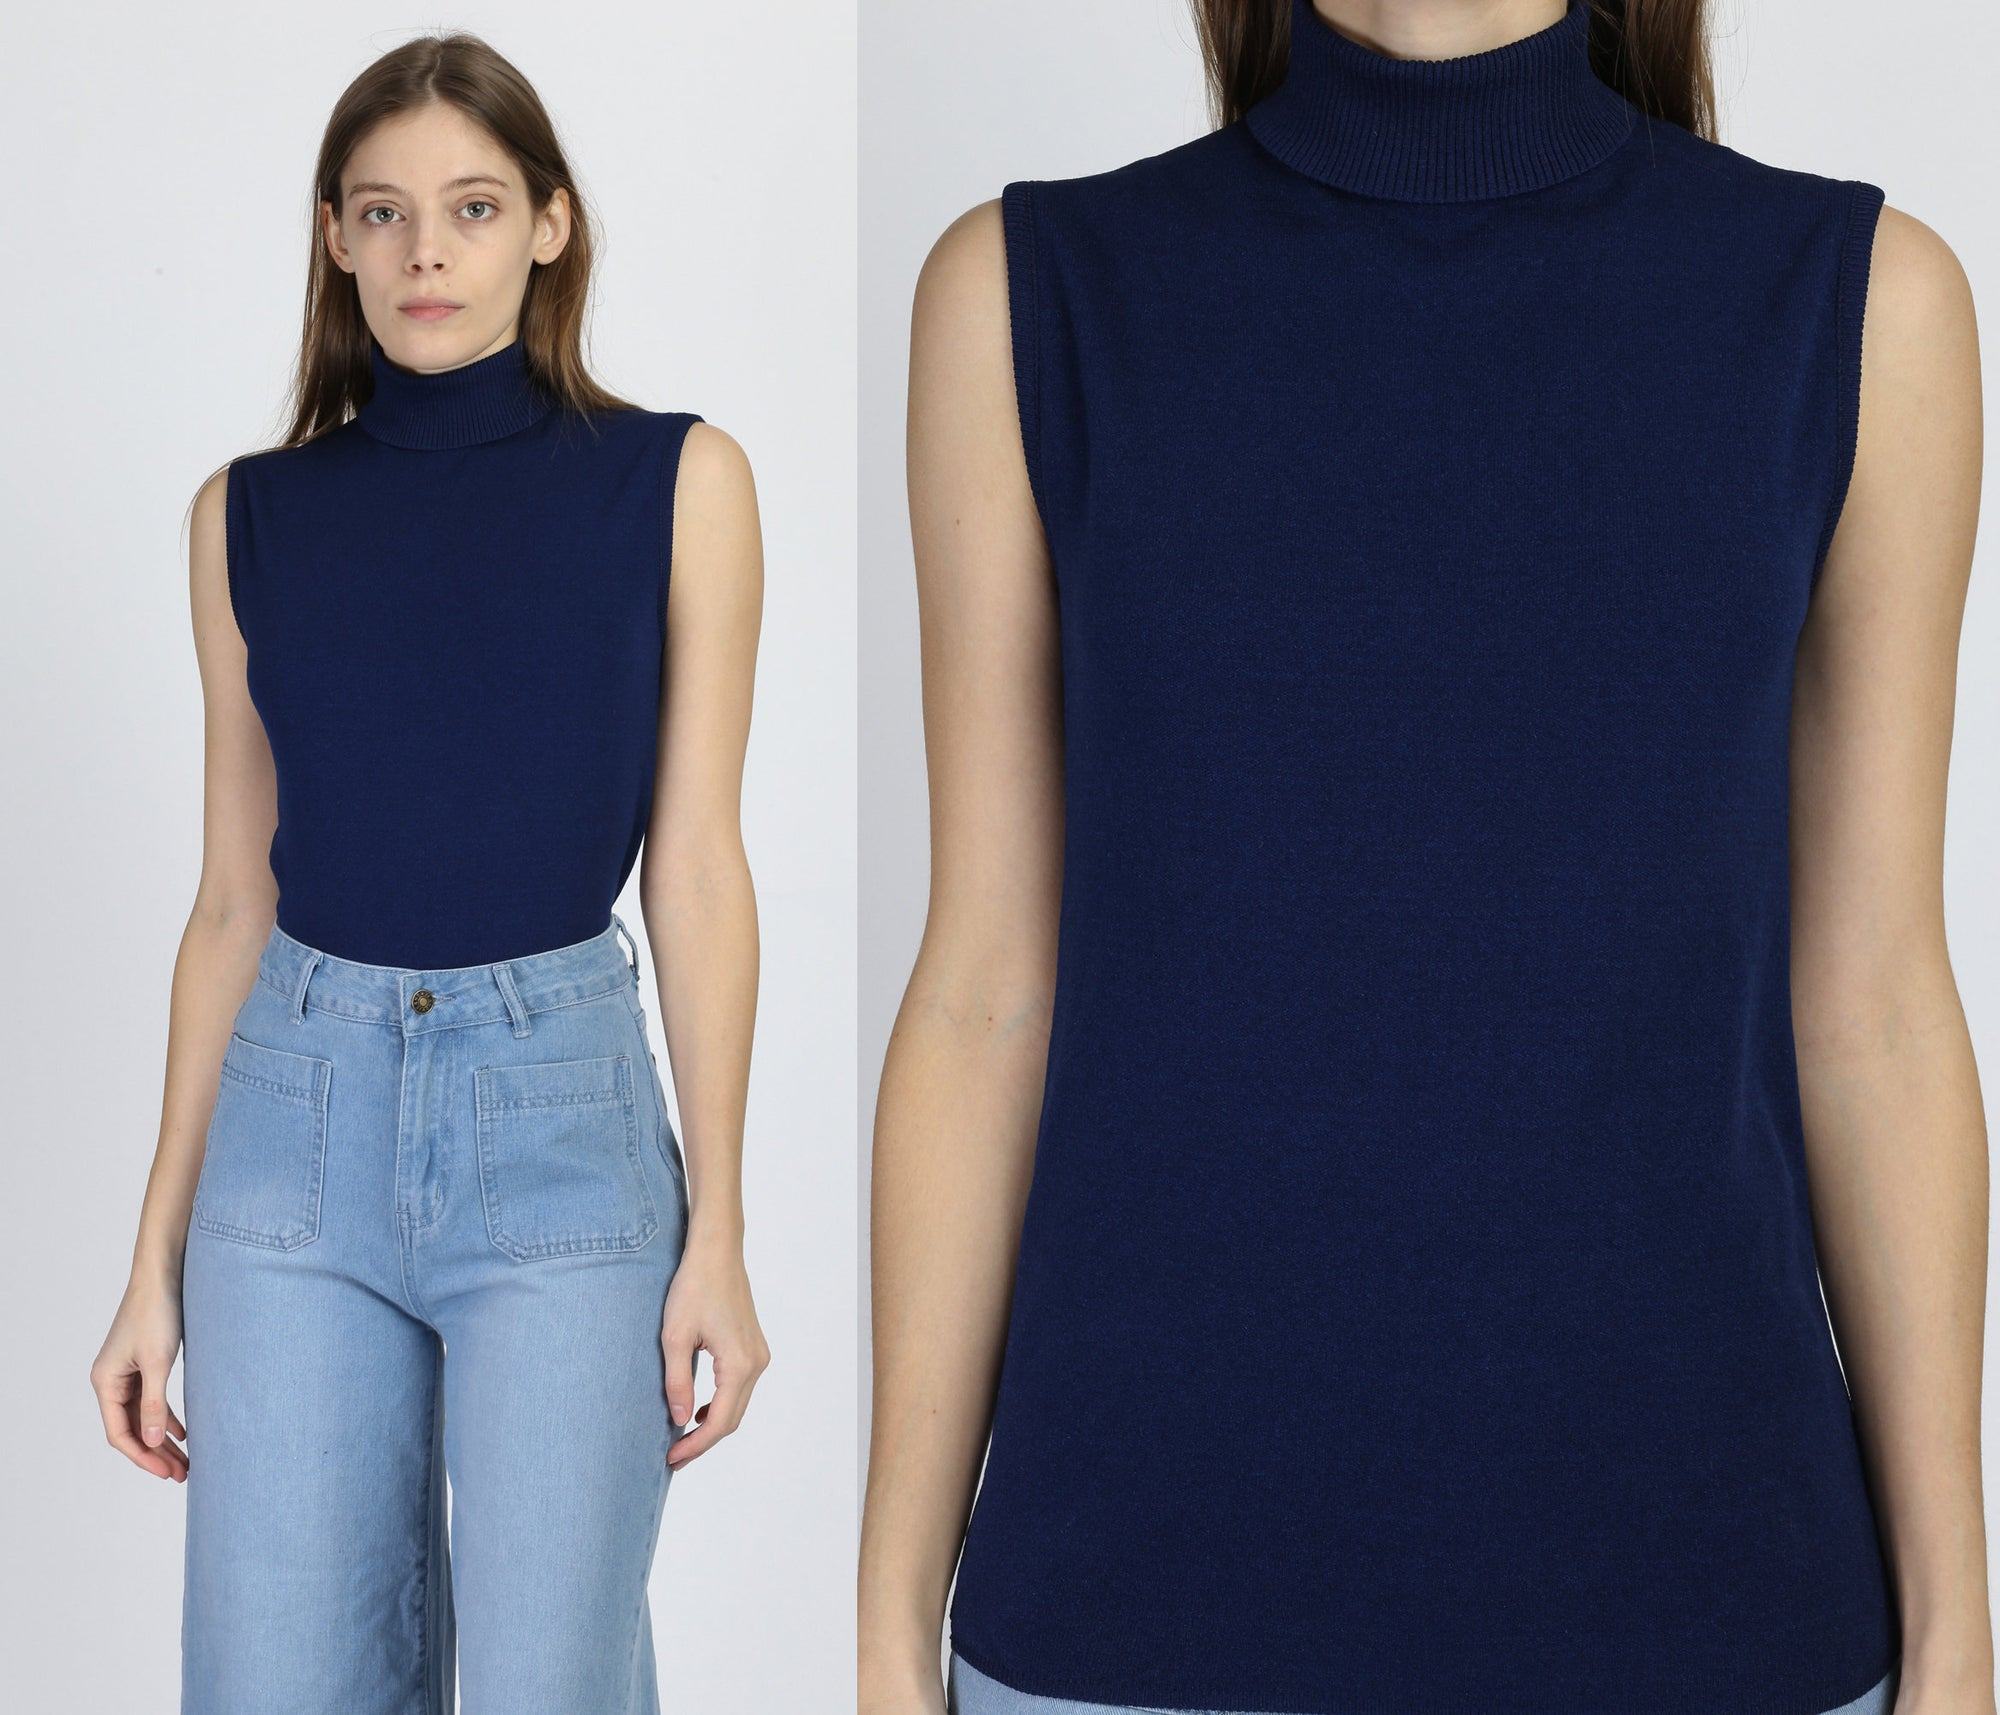 70s Navy Blue Sleeveless Turtleneck Top - Medium